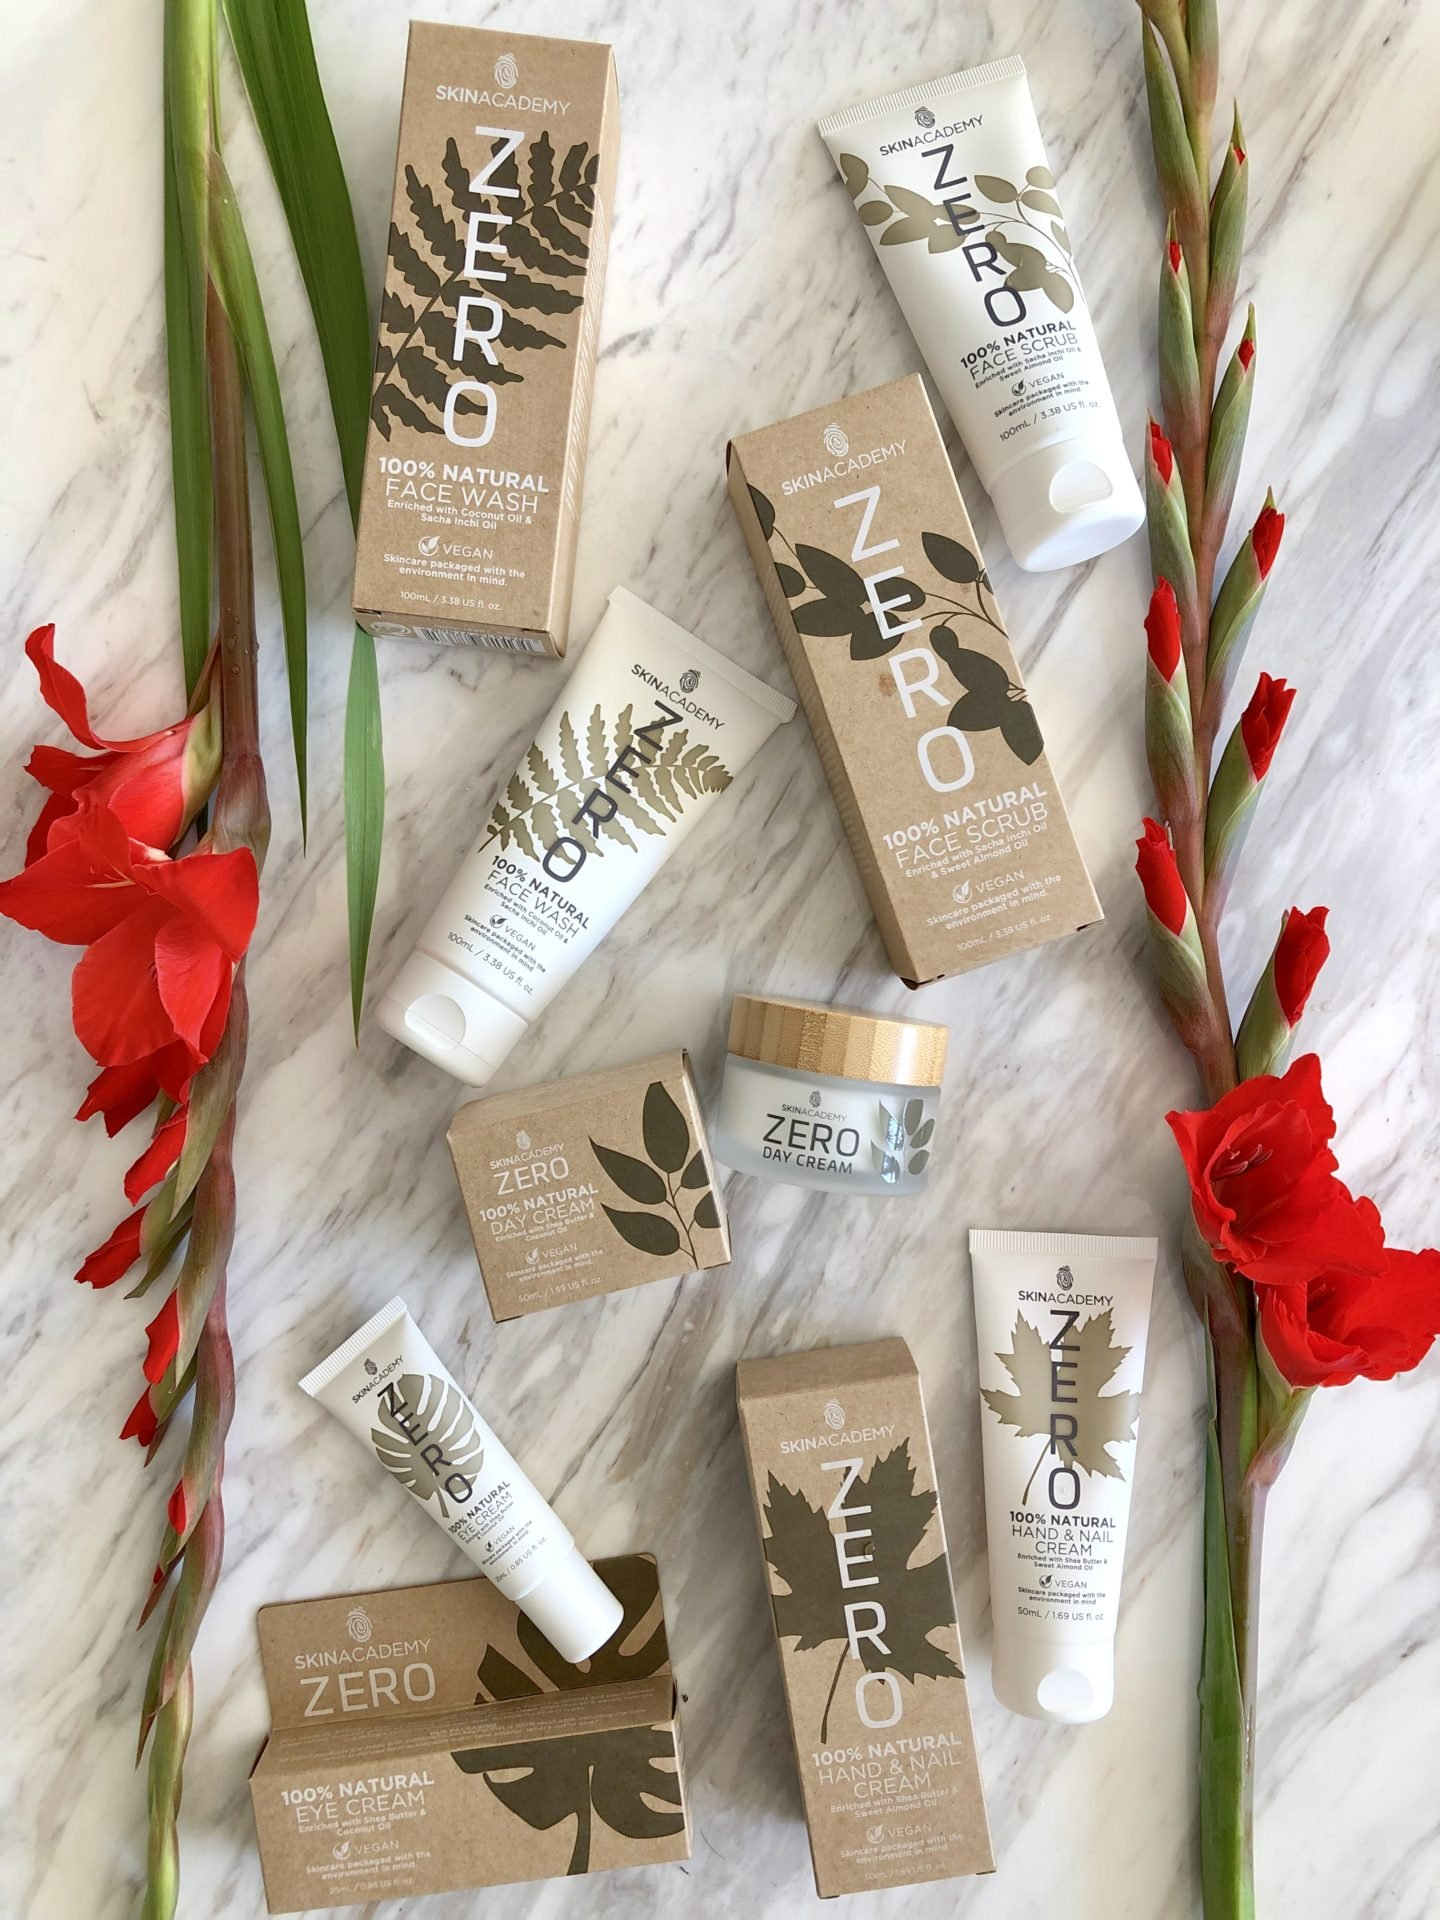 Skin Academy Zero skin care is a range of products such a face wash and day cream which areultra hydrating as well as nourishing. All of the Skin Academy Zero ingredients are 100% natural and vegan friendly!